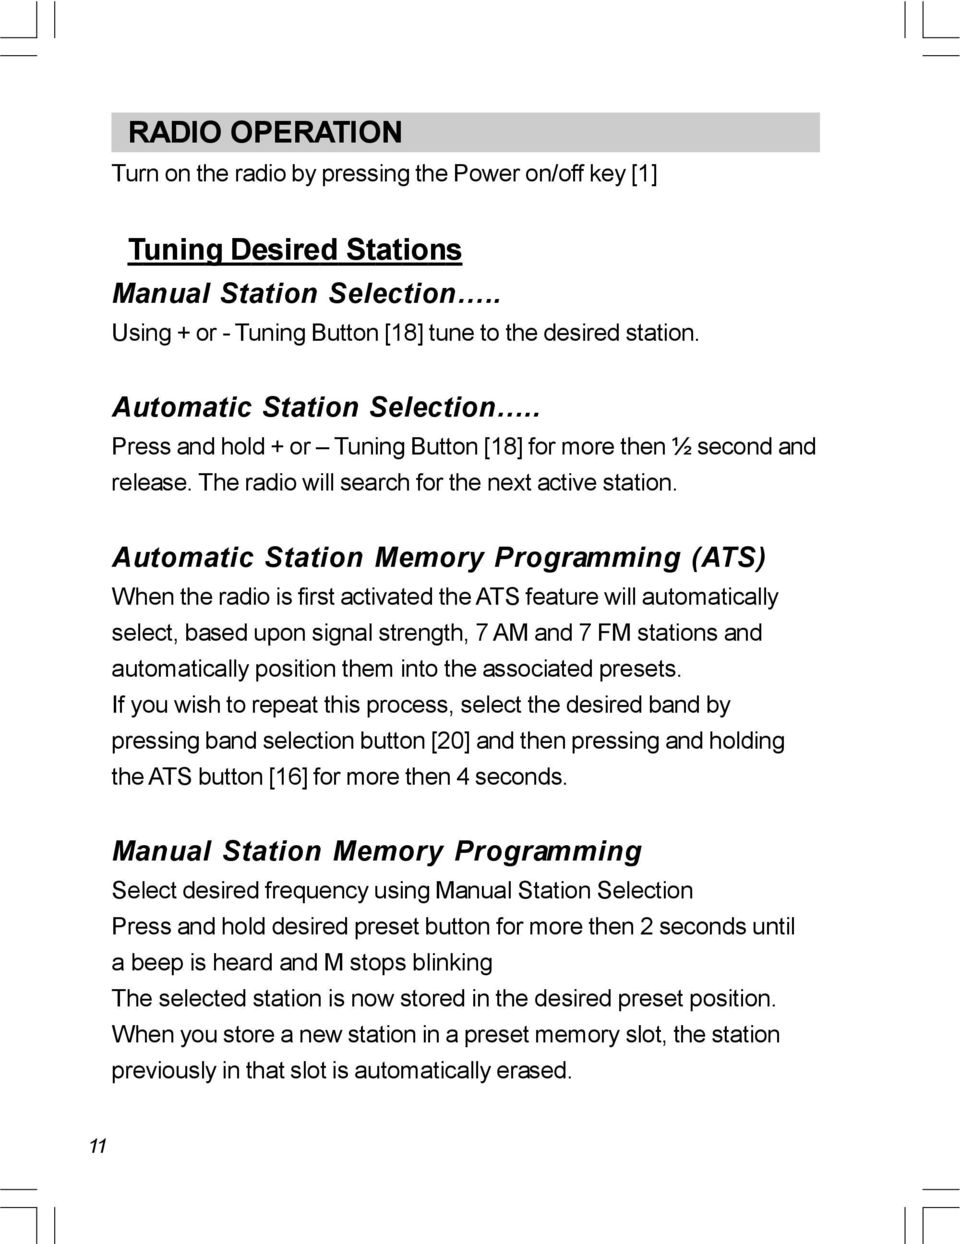 Automatic Station Memory Programming (ATS) When the radio is first activated the ATS feature will automatically select, based upon signal strength, 7 AM and 7 FM stations and automatically position